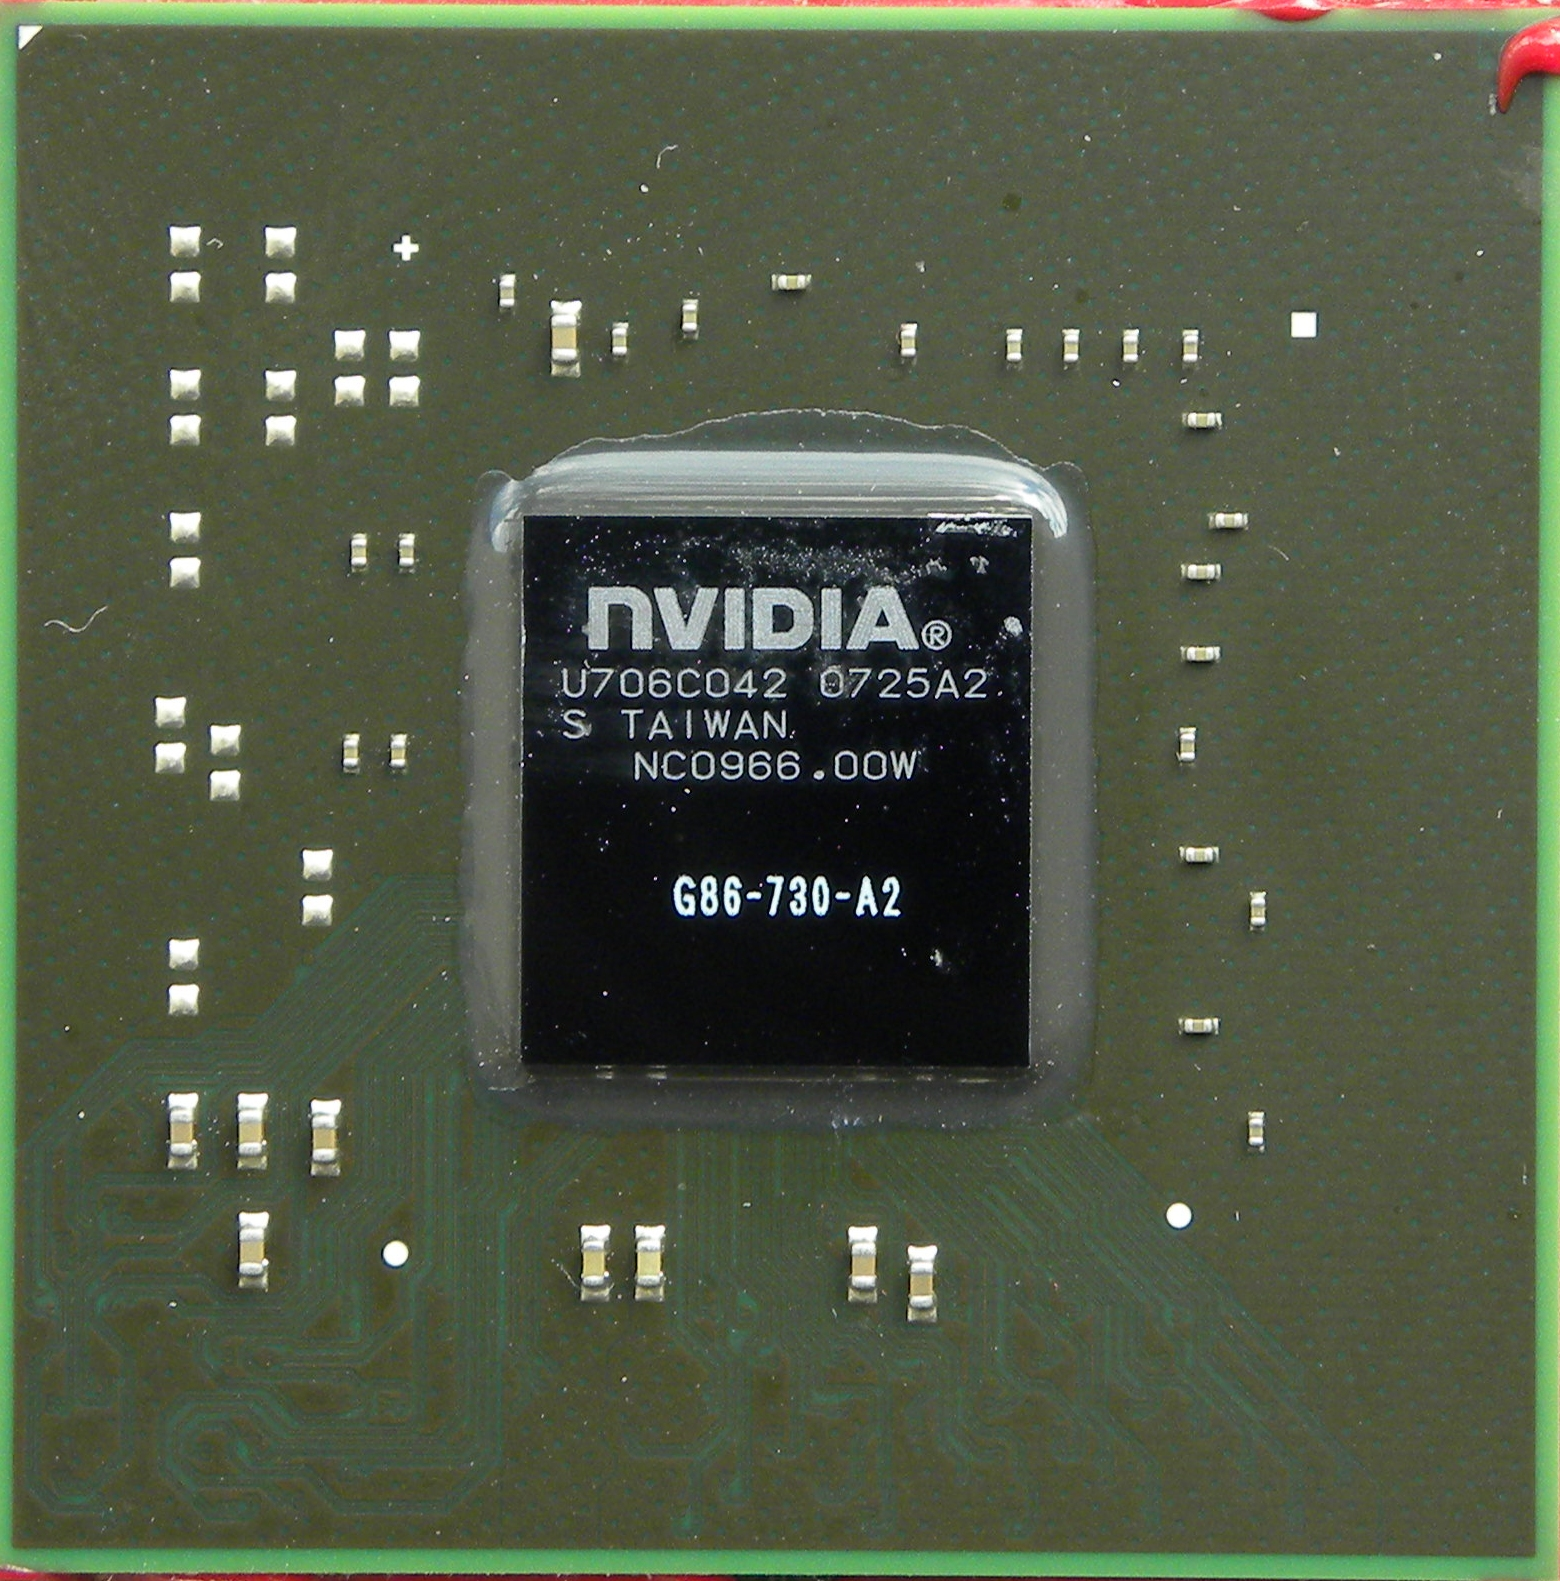 nvidia geforce 8400 gs driver windows 10